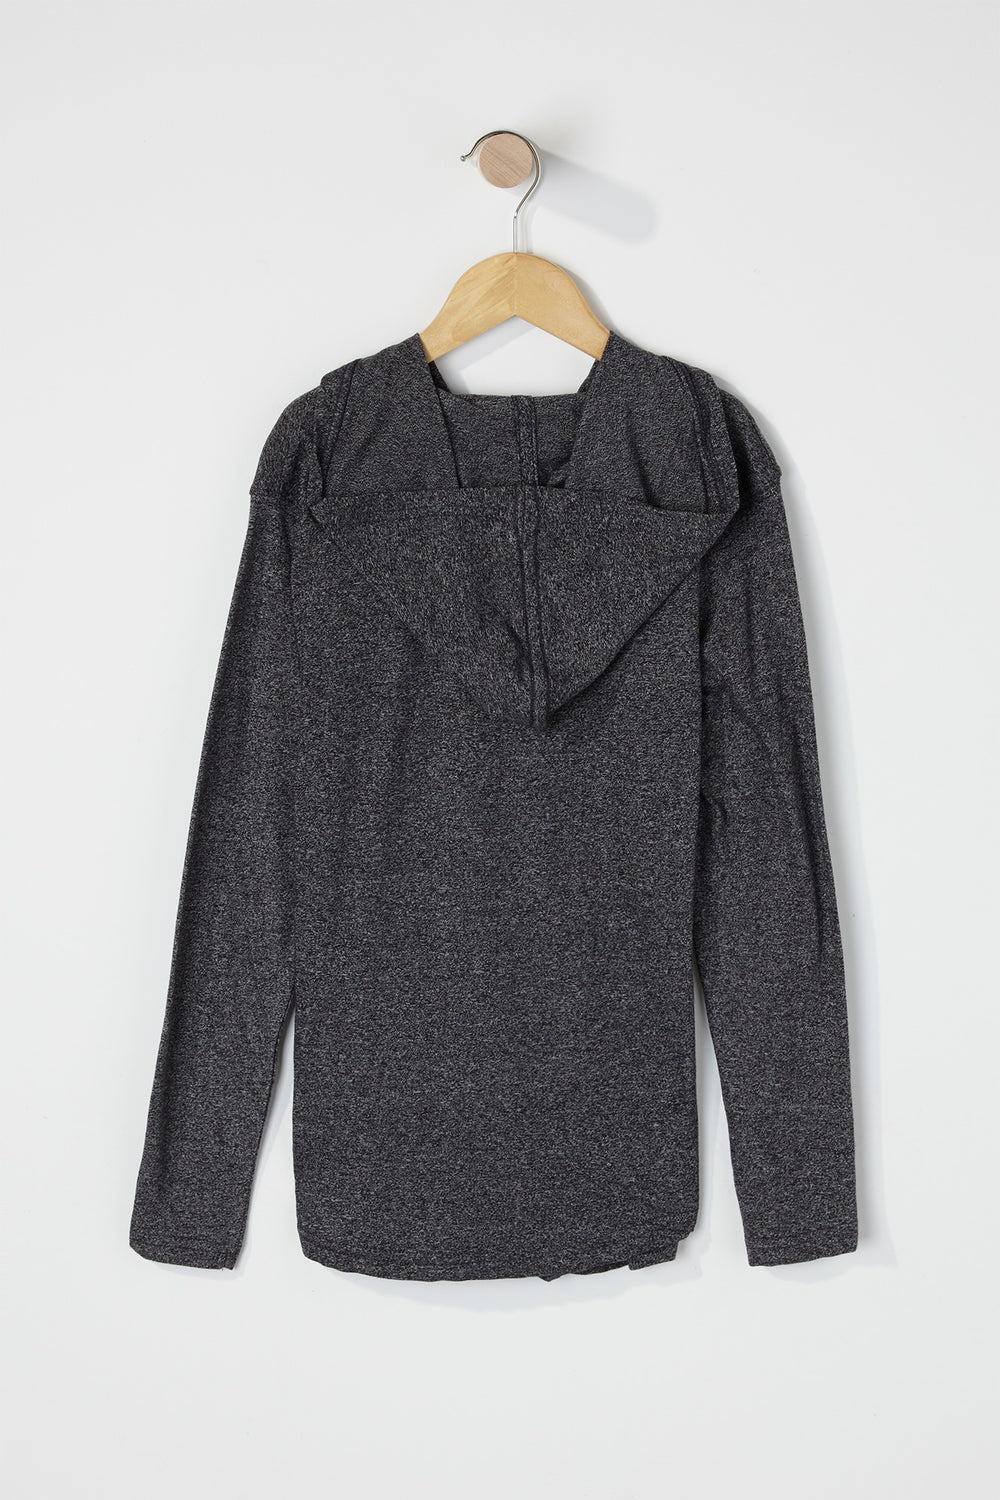 Boys Speckled Hooded Long Sleeve Charcoal